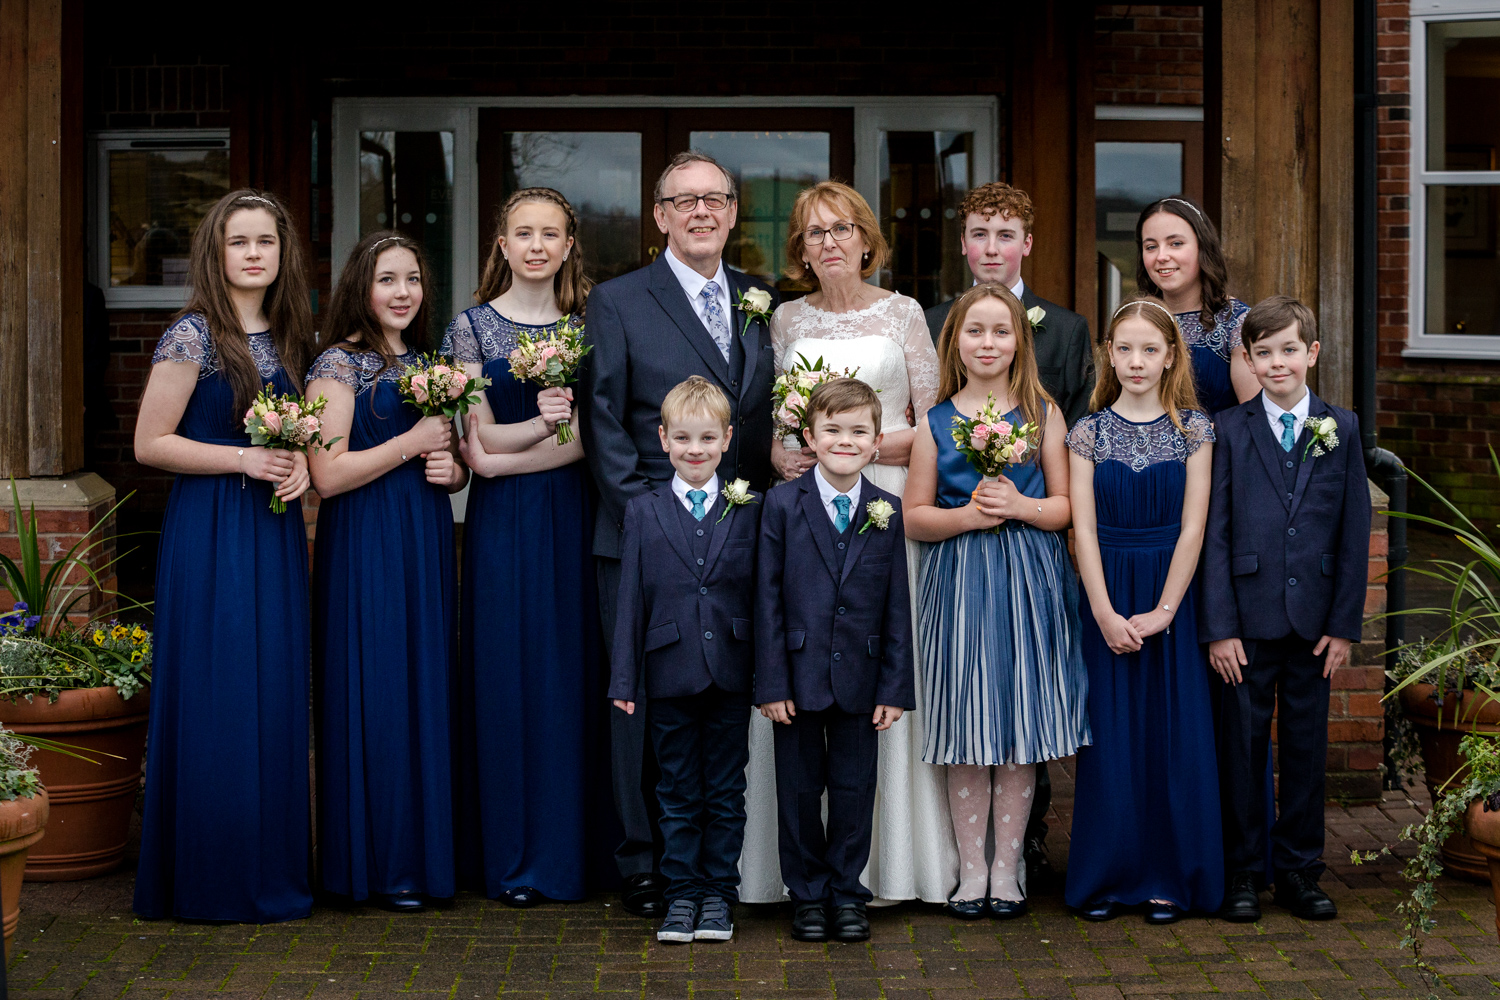 The bride and groom with their grandchildren